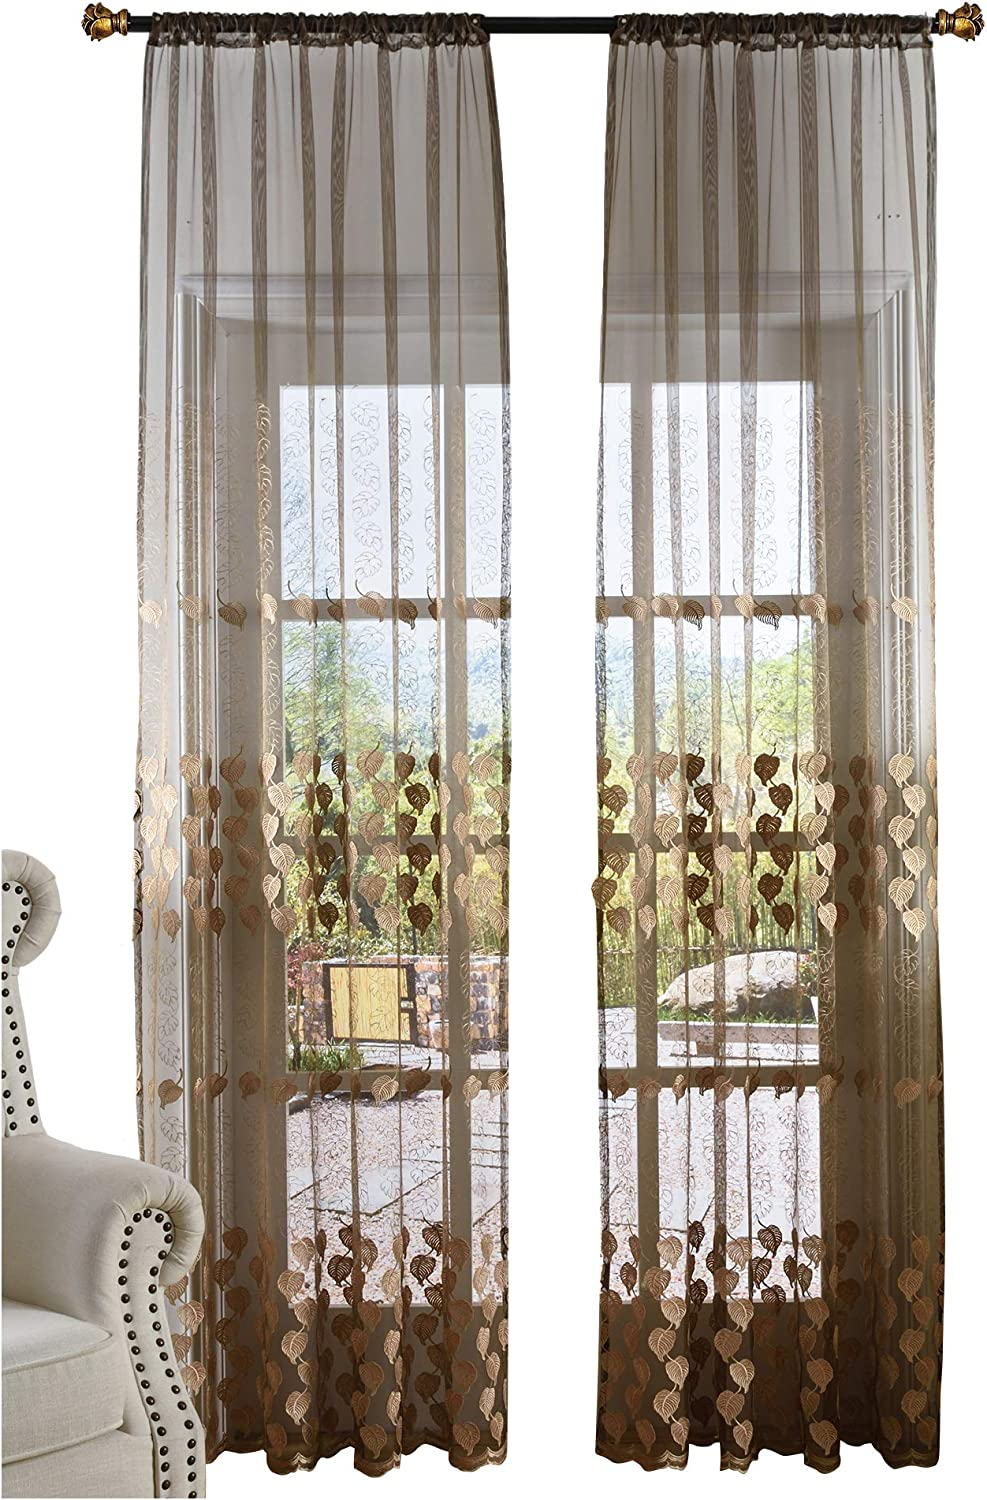 Beautiful Countryside Style Sheer Curtains Exquisite 3D Leaves Pattern Embroidered Window Treatment for Bedroom Living Room (1 Panel, W 50 x L 102 inch, Brown) 1300298C1BYBBN1501028508